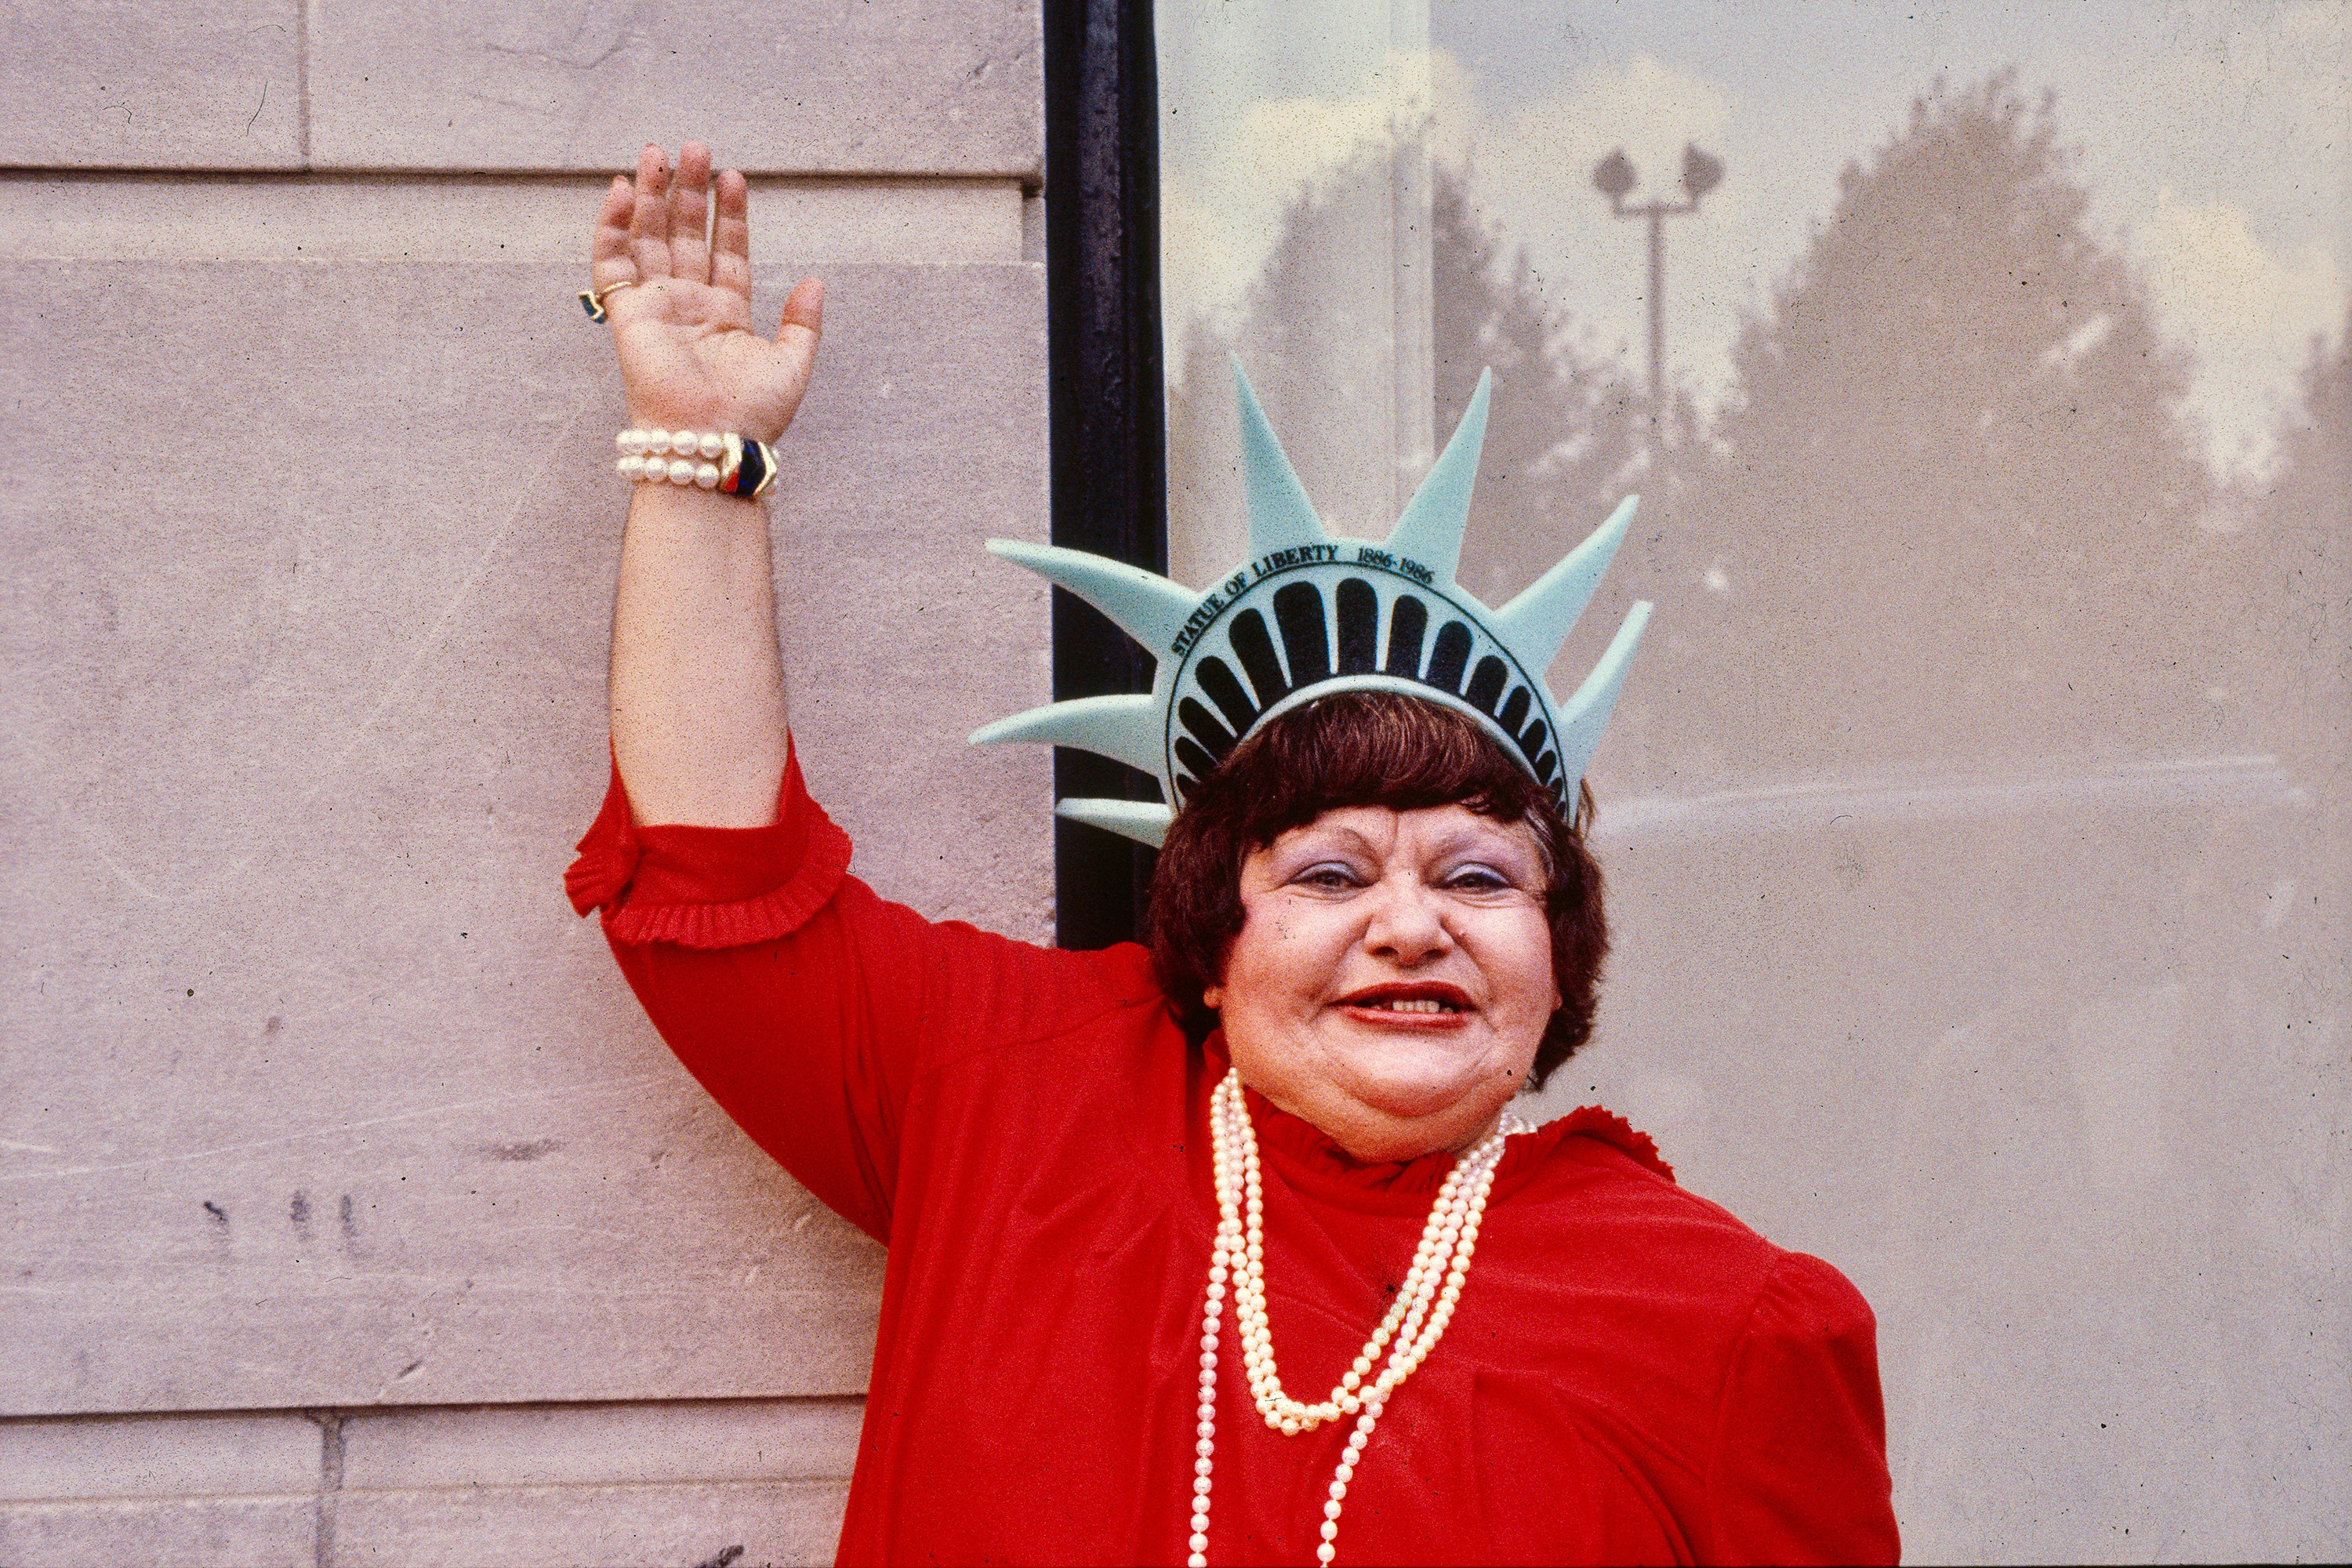 A woman wearing a foam Statue of Liberty novelty visor and a pearl necklace waves to the camera